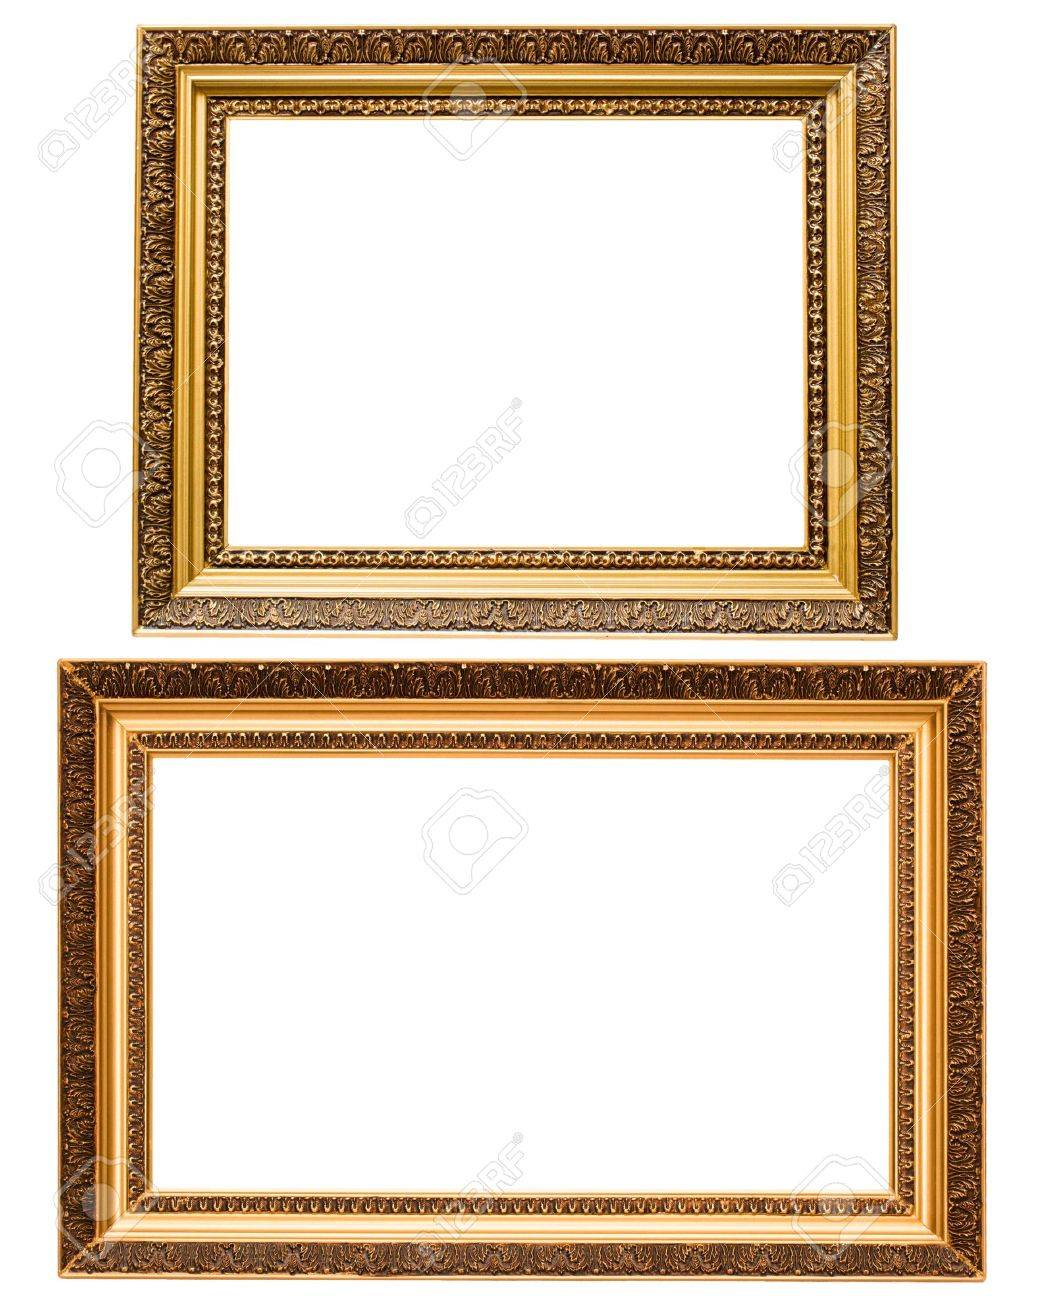 Two Gold Plated Wooden Picture Frames Isolated On White Stock Photo ...